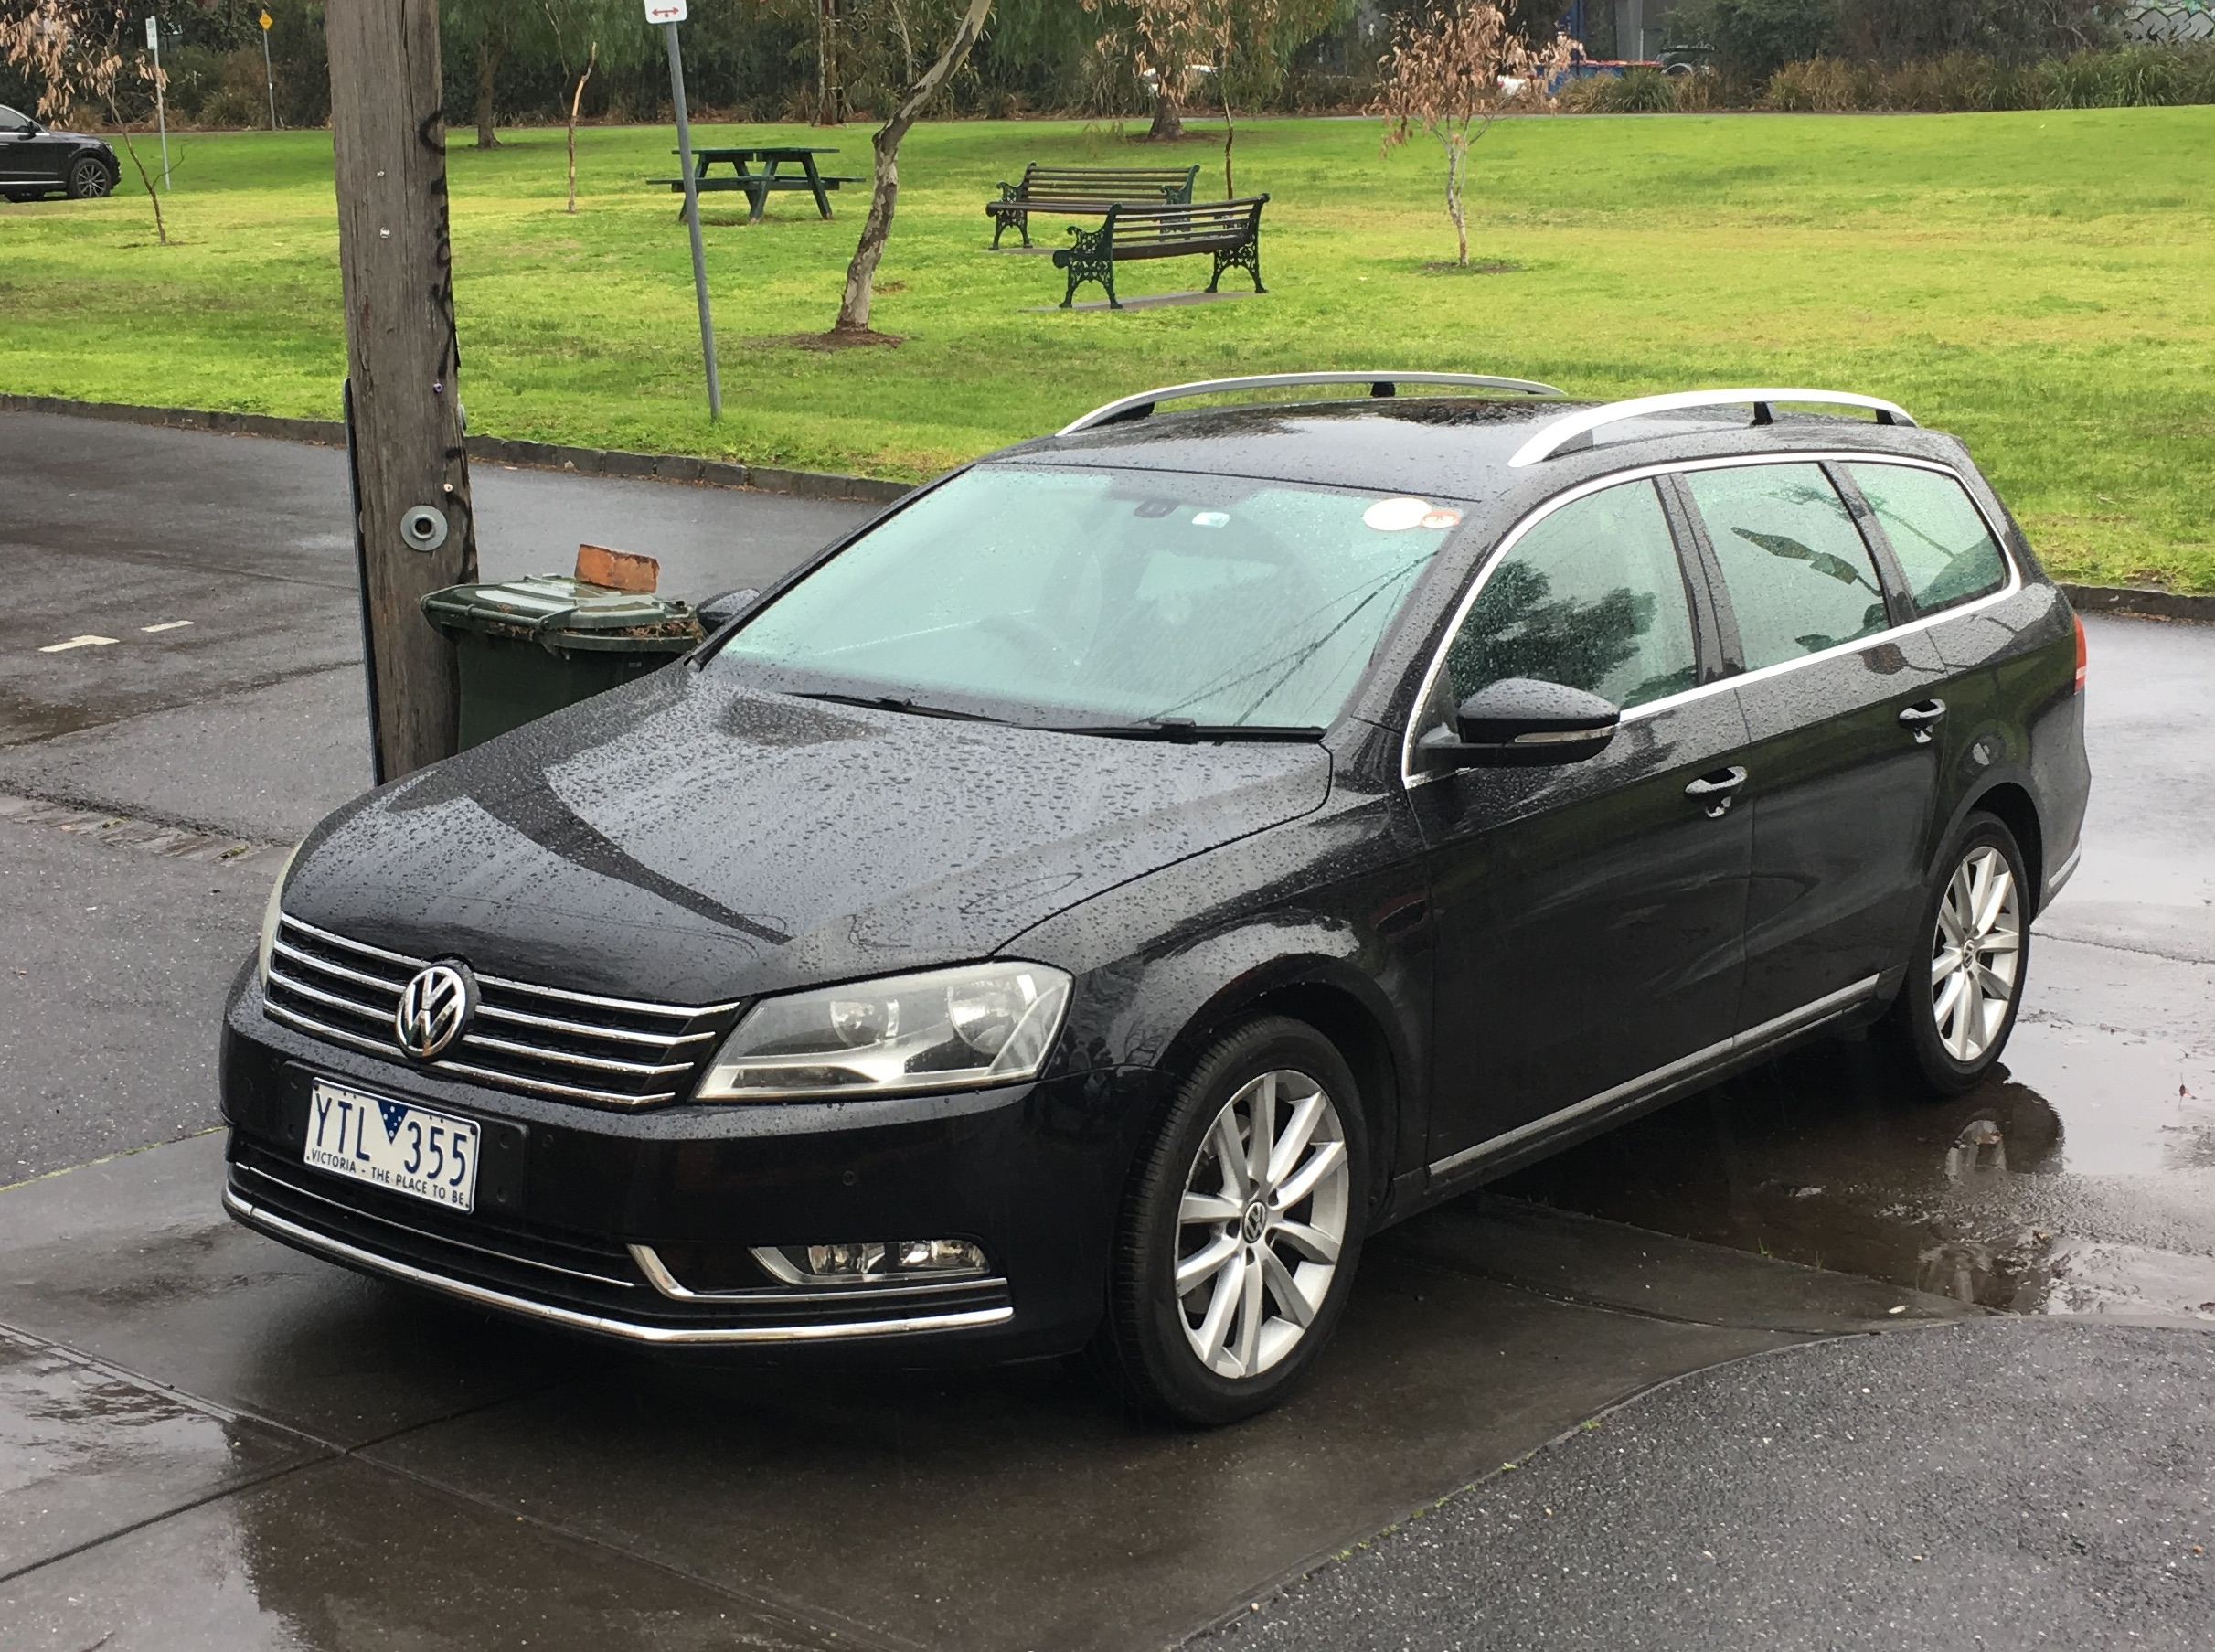 Picture of Amy's 2011 Volkswagen Passat